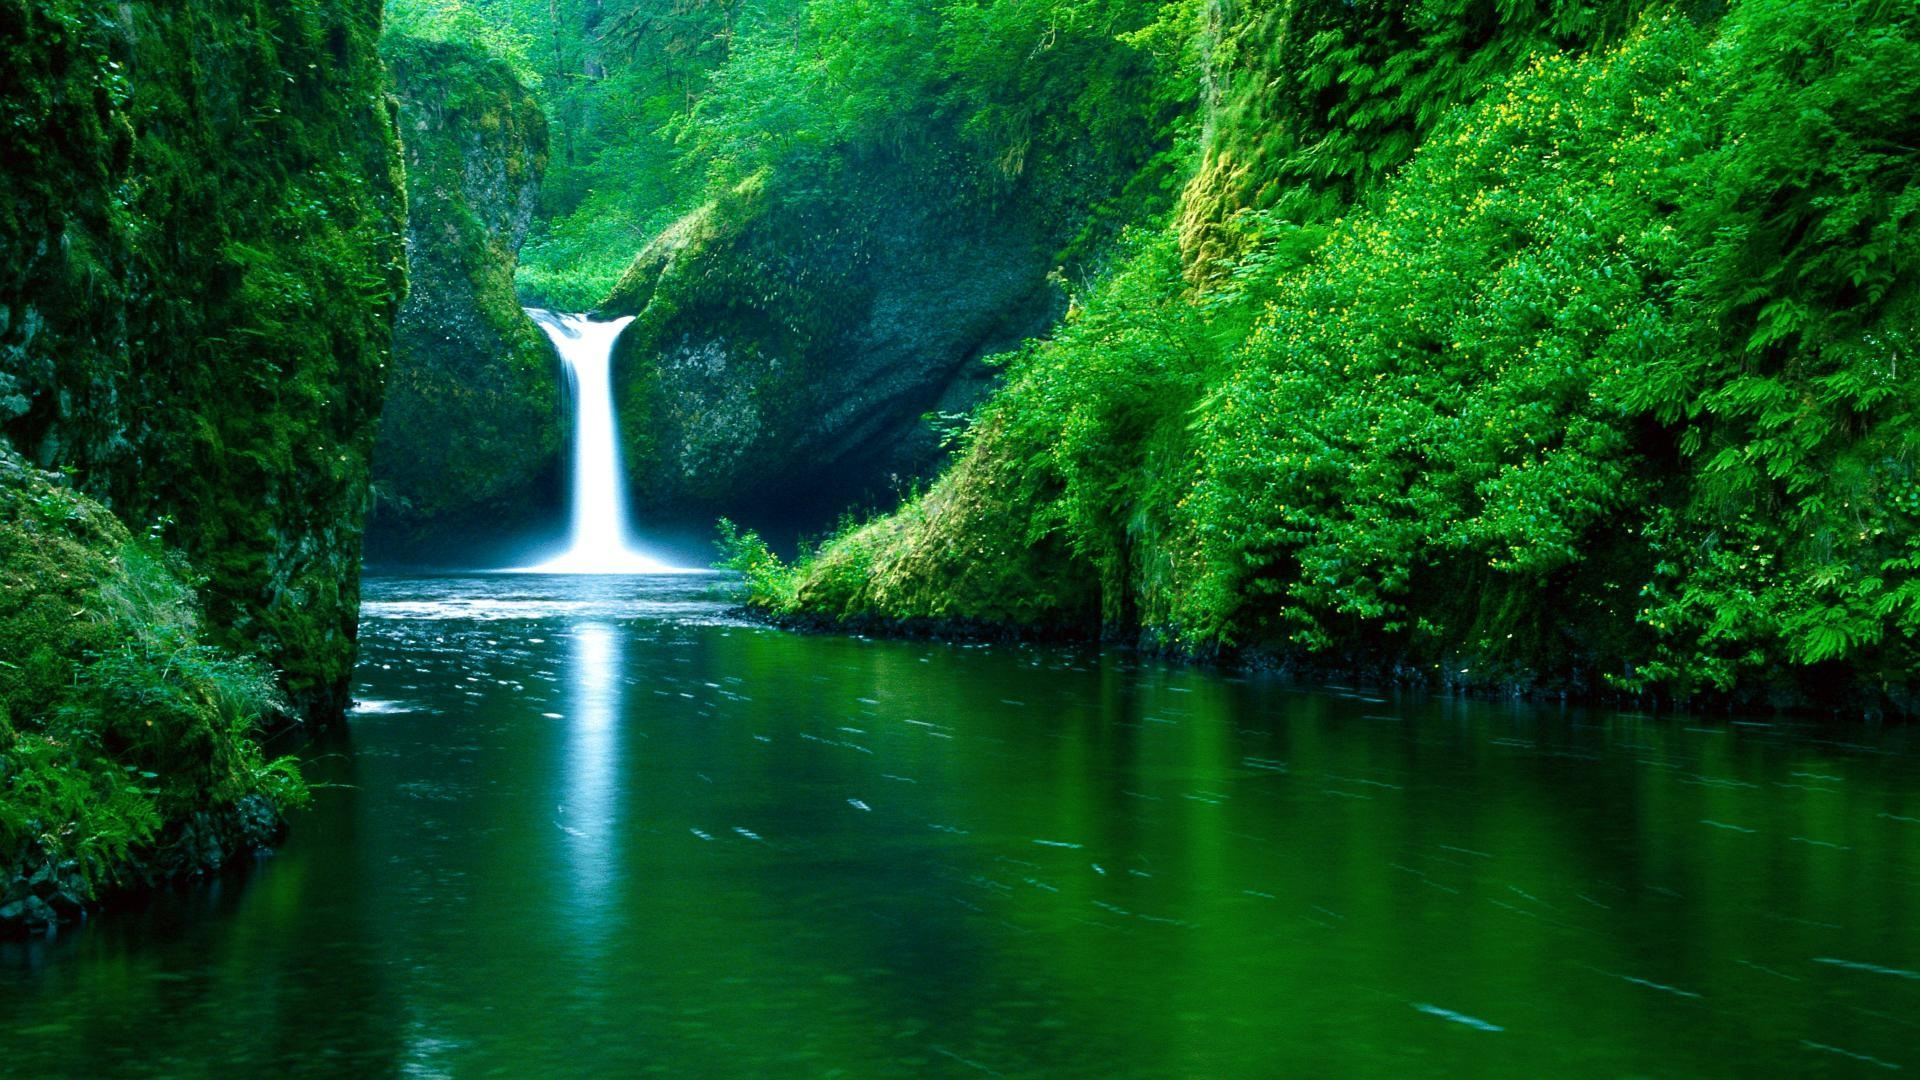 Wallpaper Waterfall River Green 1920x1080 Full Hd 2k Picture Image